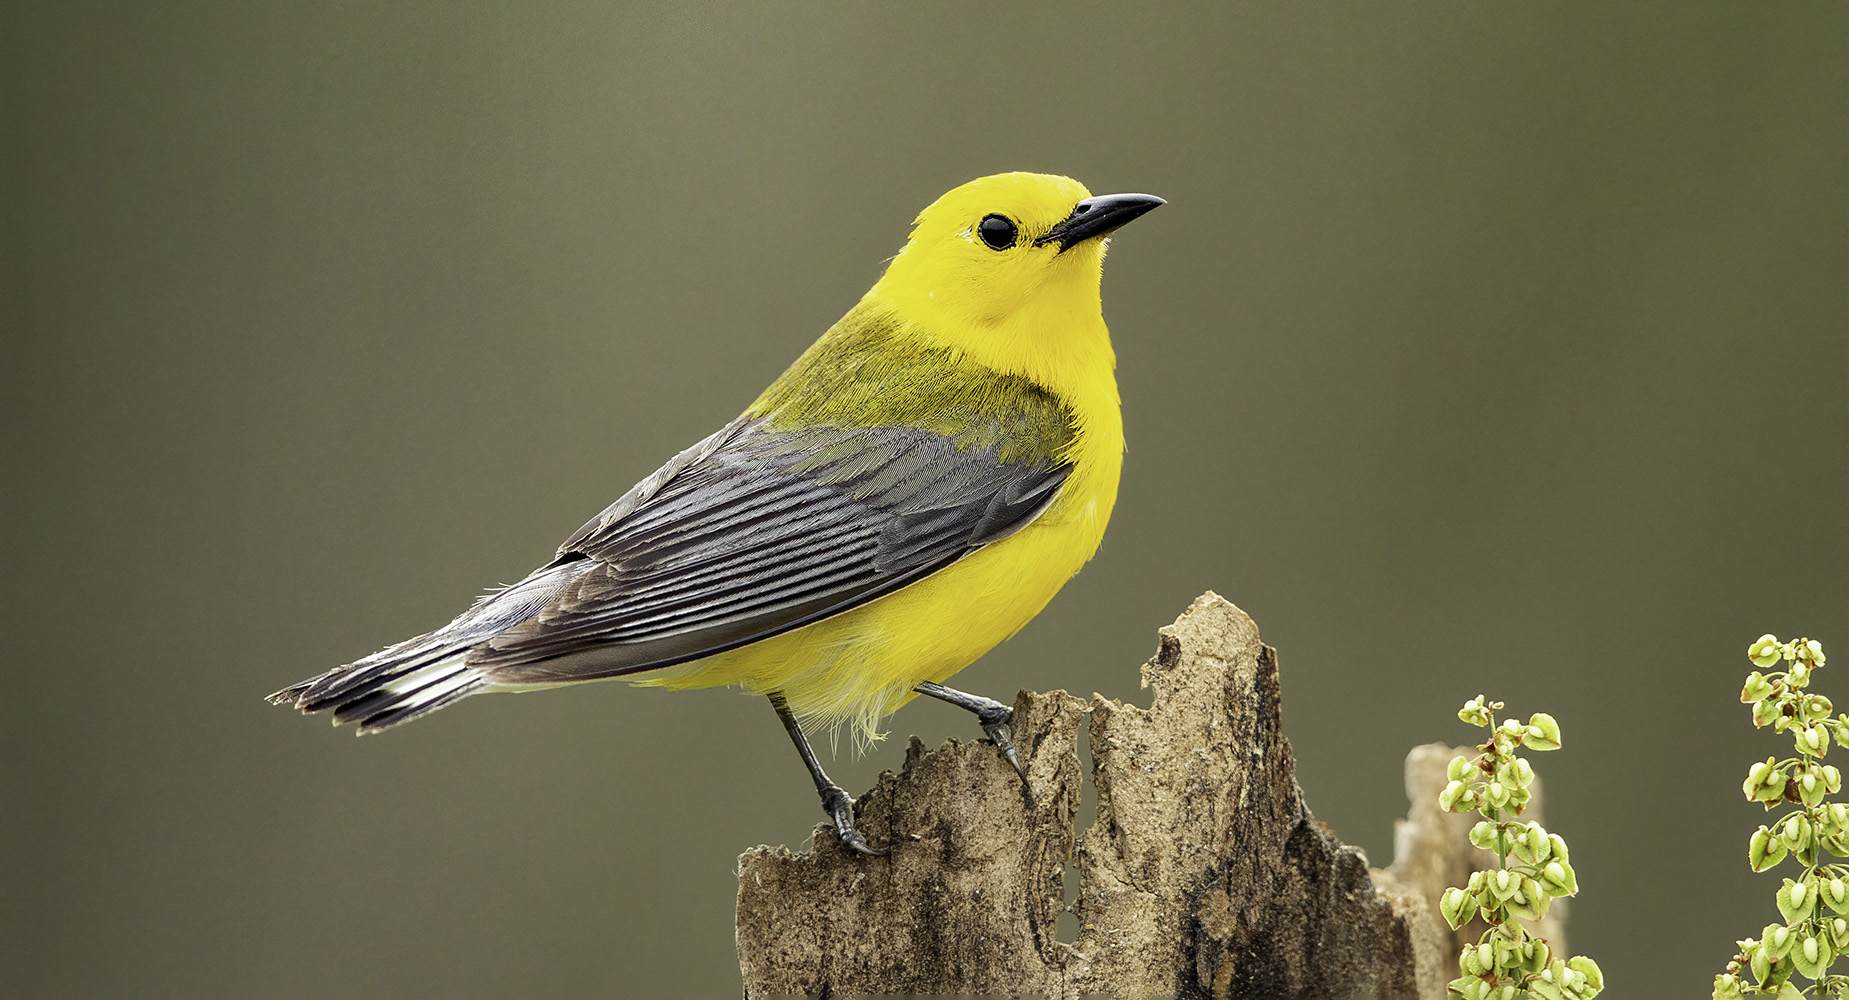 Prothonotary warbler on tree stump